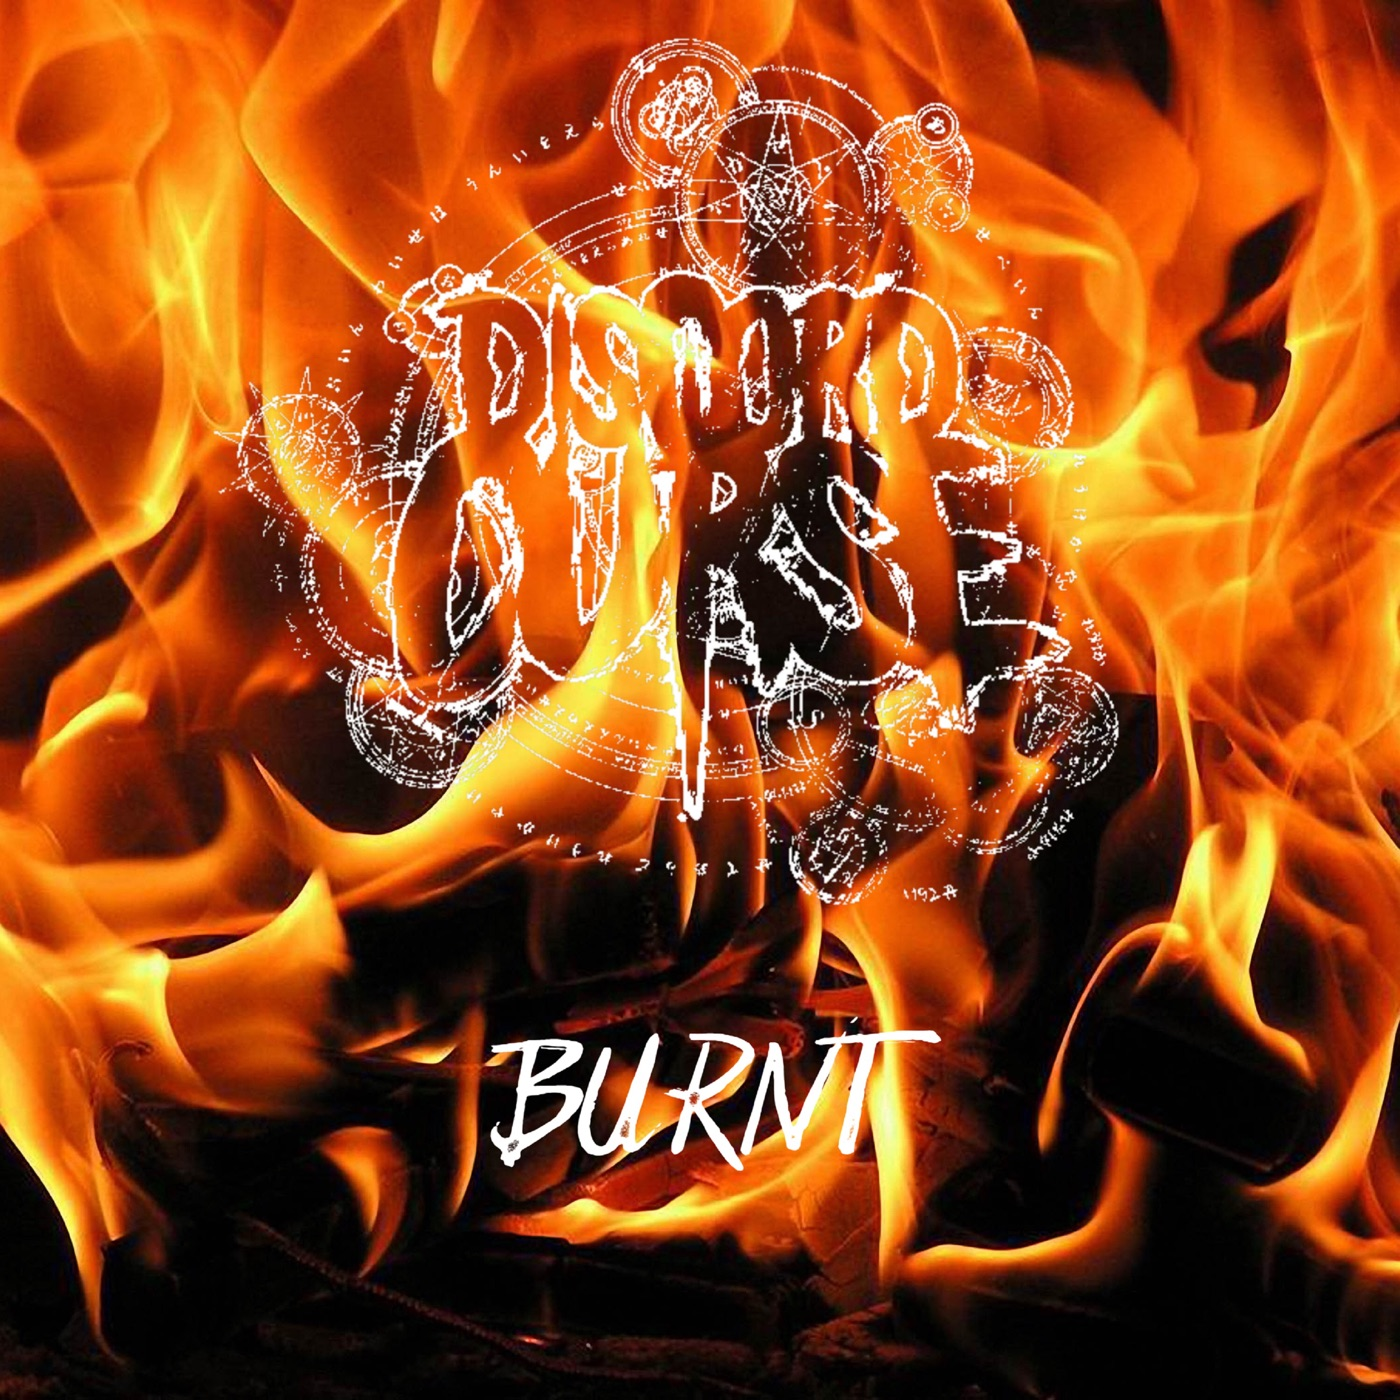 Discord Curse - Burnt [Single] (2019)